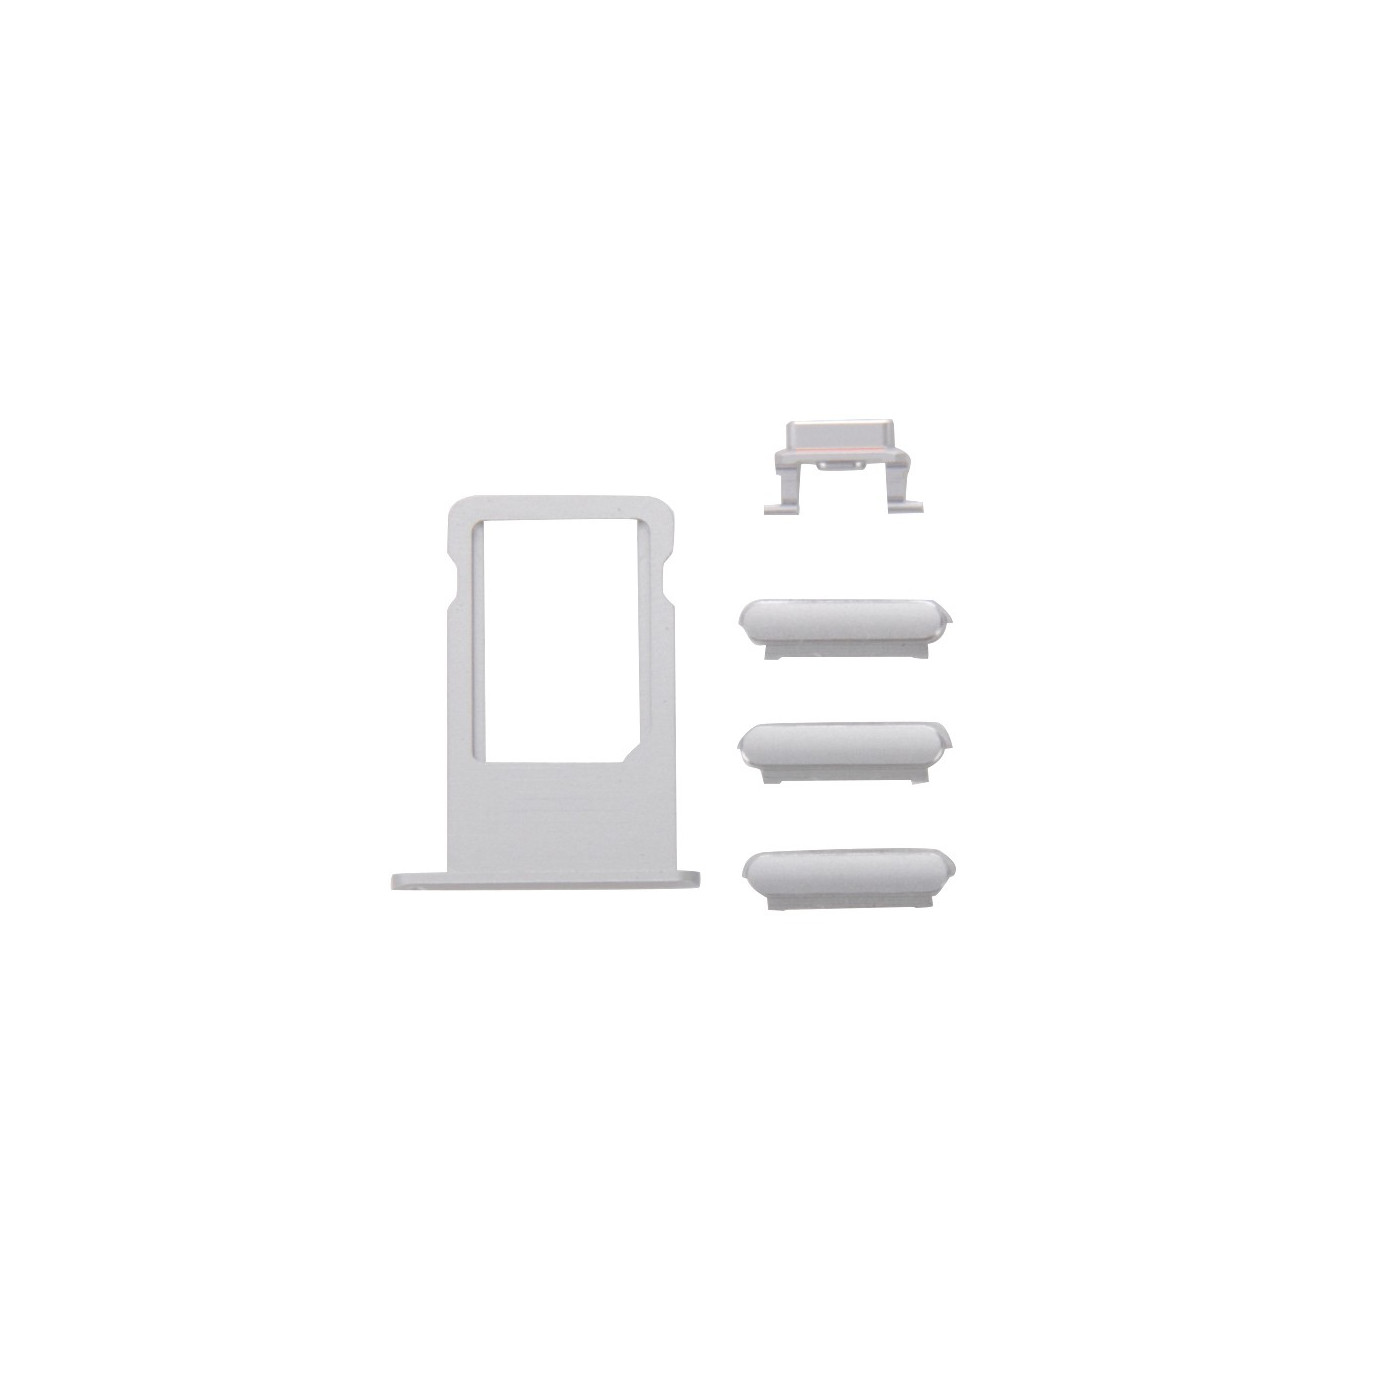 keys Kit 3 in 1 volume power iPhone 6s Plus silver + door sim card